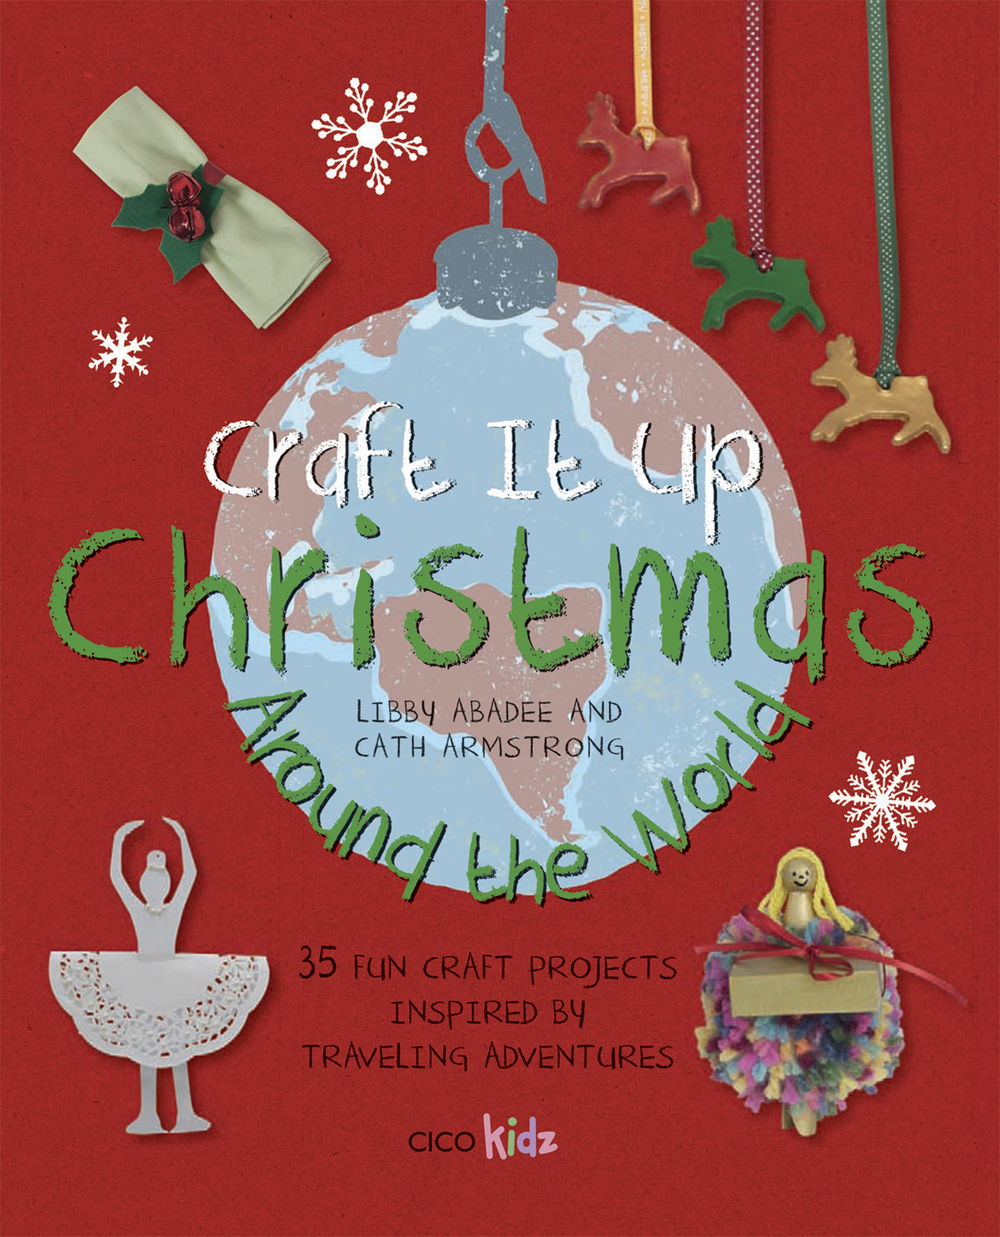 Craft It Up Christmas Around The World Libby Abadee Cath Armstrong CICO Kidz